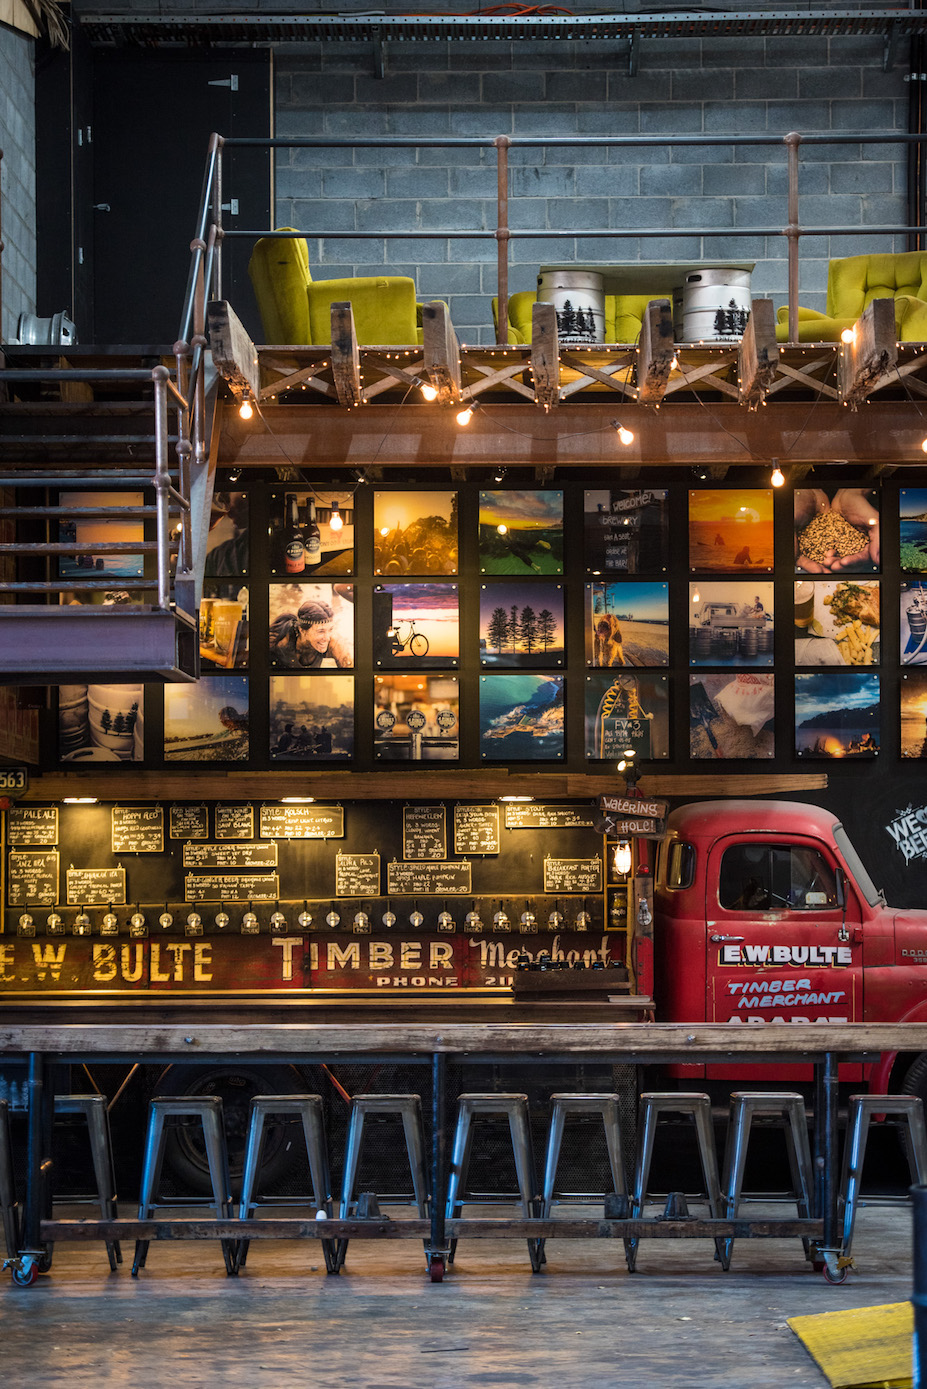 4 Pines Truck Bar and Mezzanine